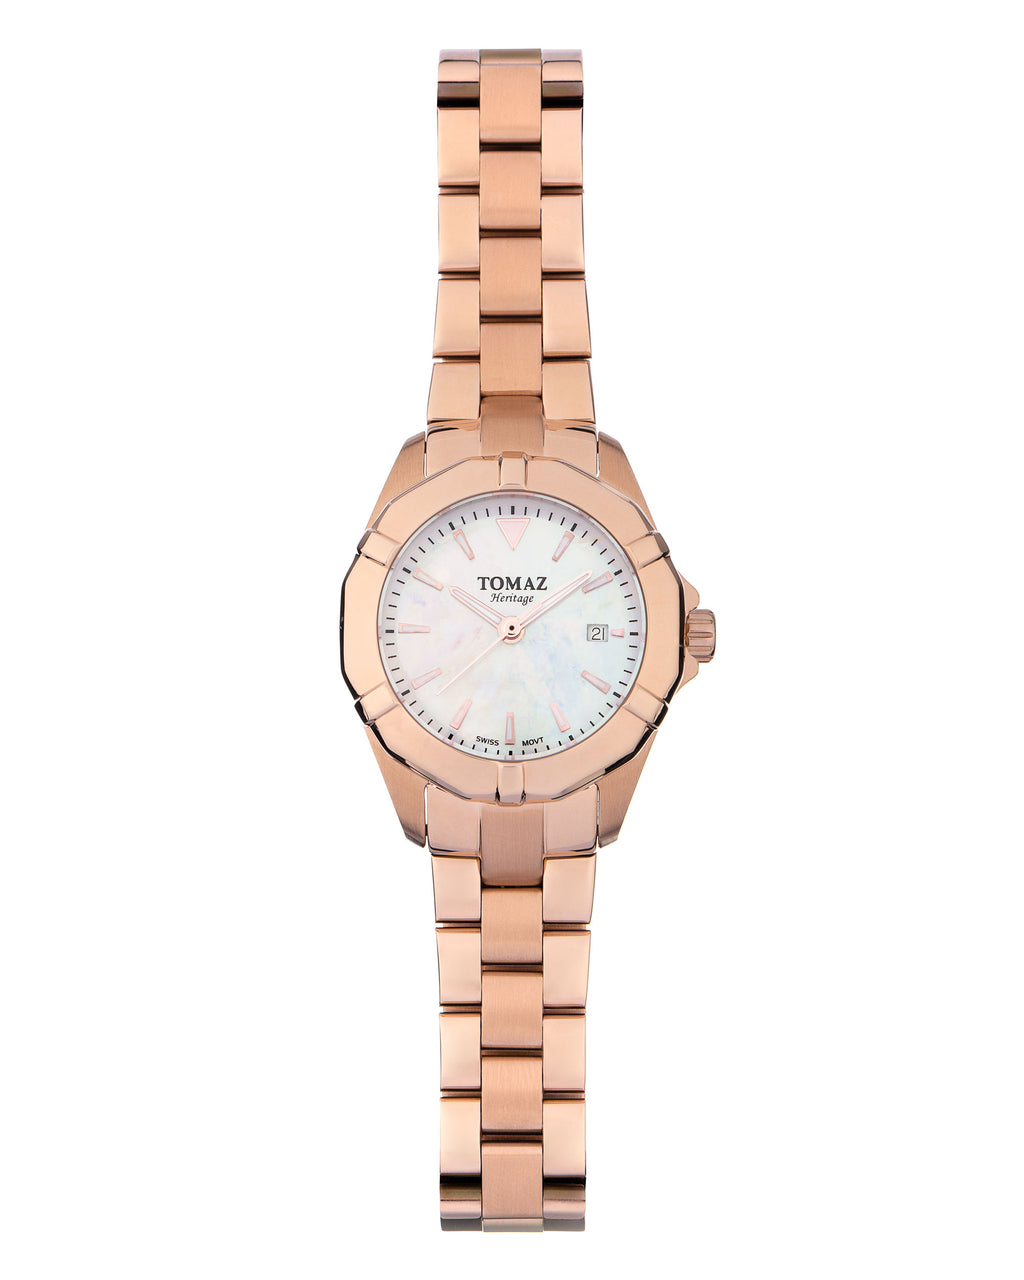 Tomaz Ladies Watch TQ009 (Rose Gold/Pearl)